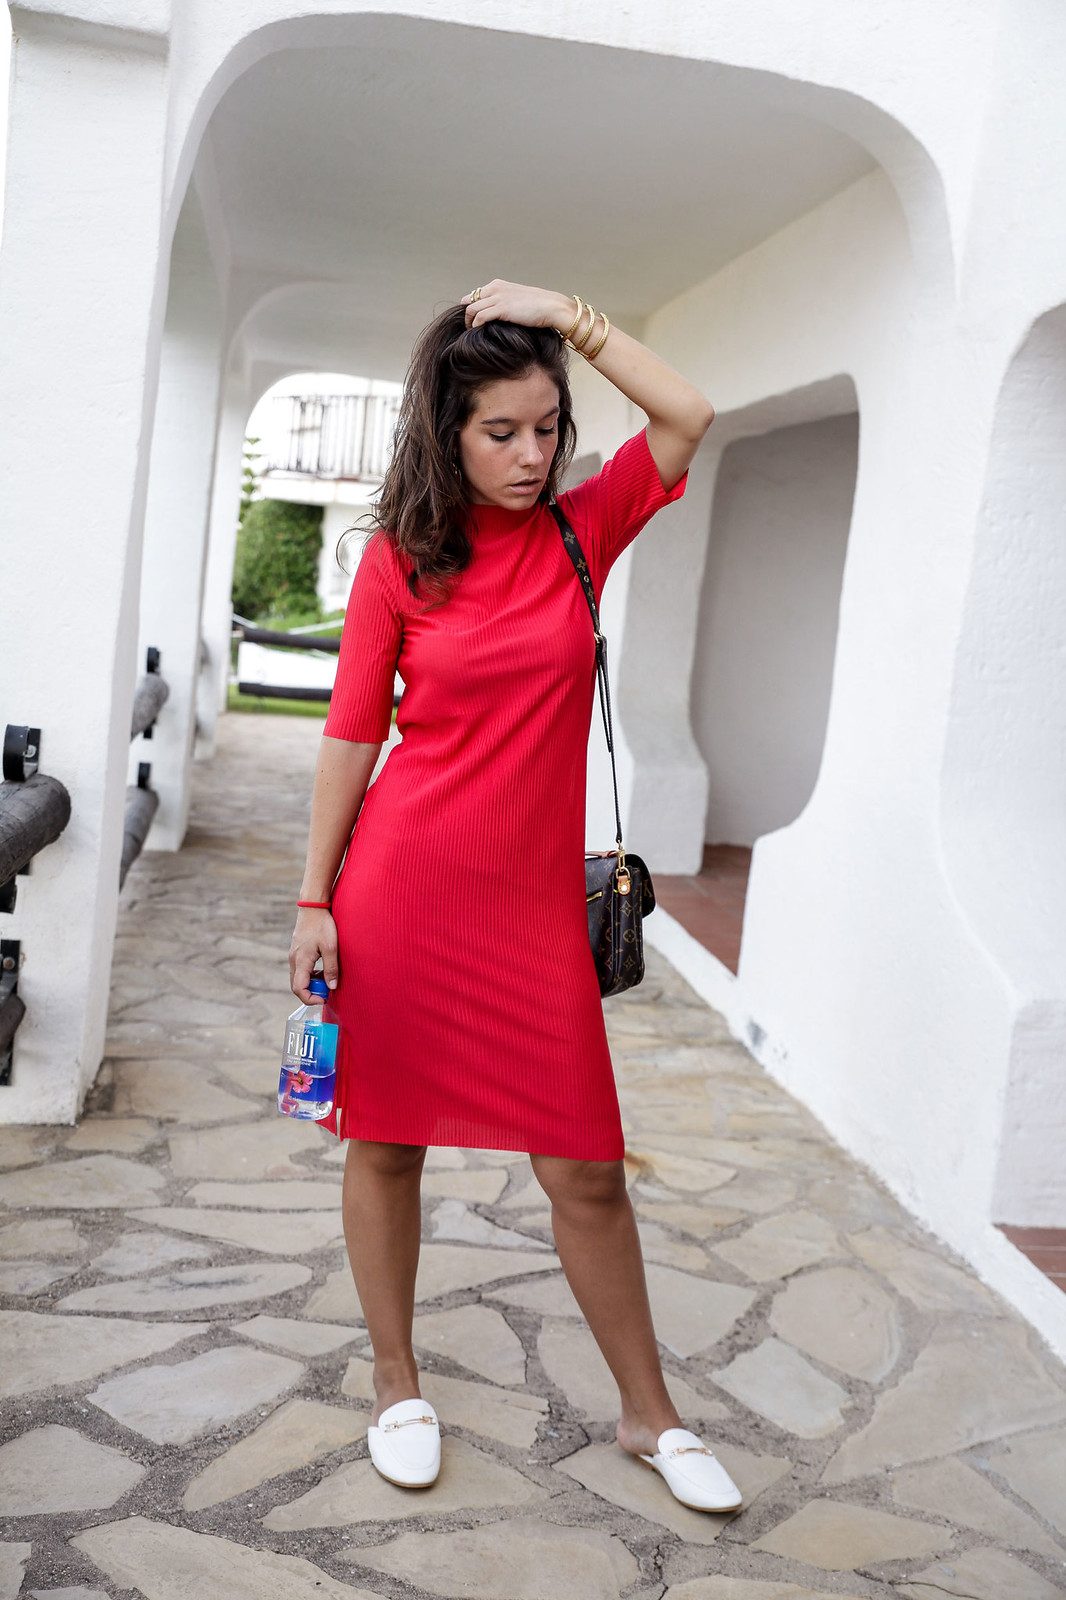 010_red_dress_nakd_code_promocional_off_blogger_theguestgirl_lady_in_red_glam_style_barcelona_vestido_rojo_perfecto